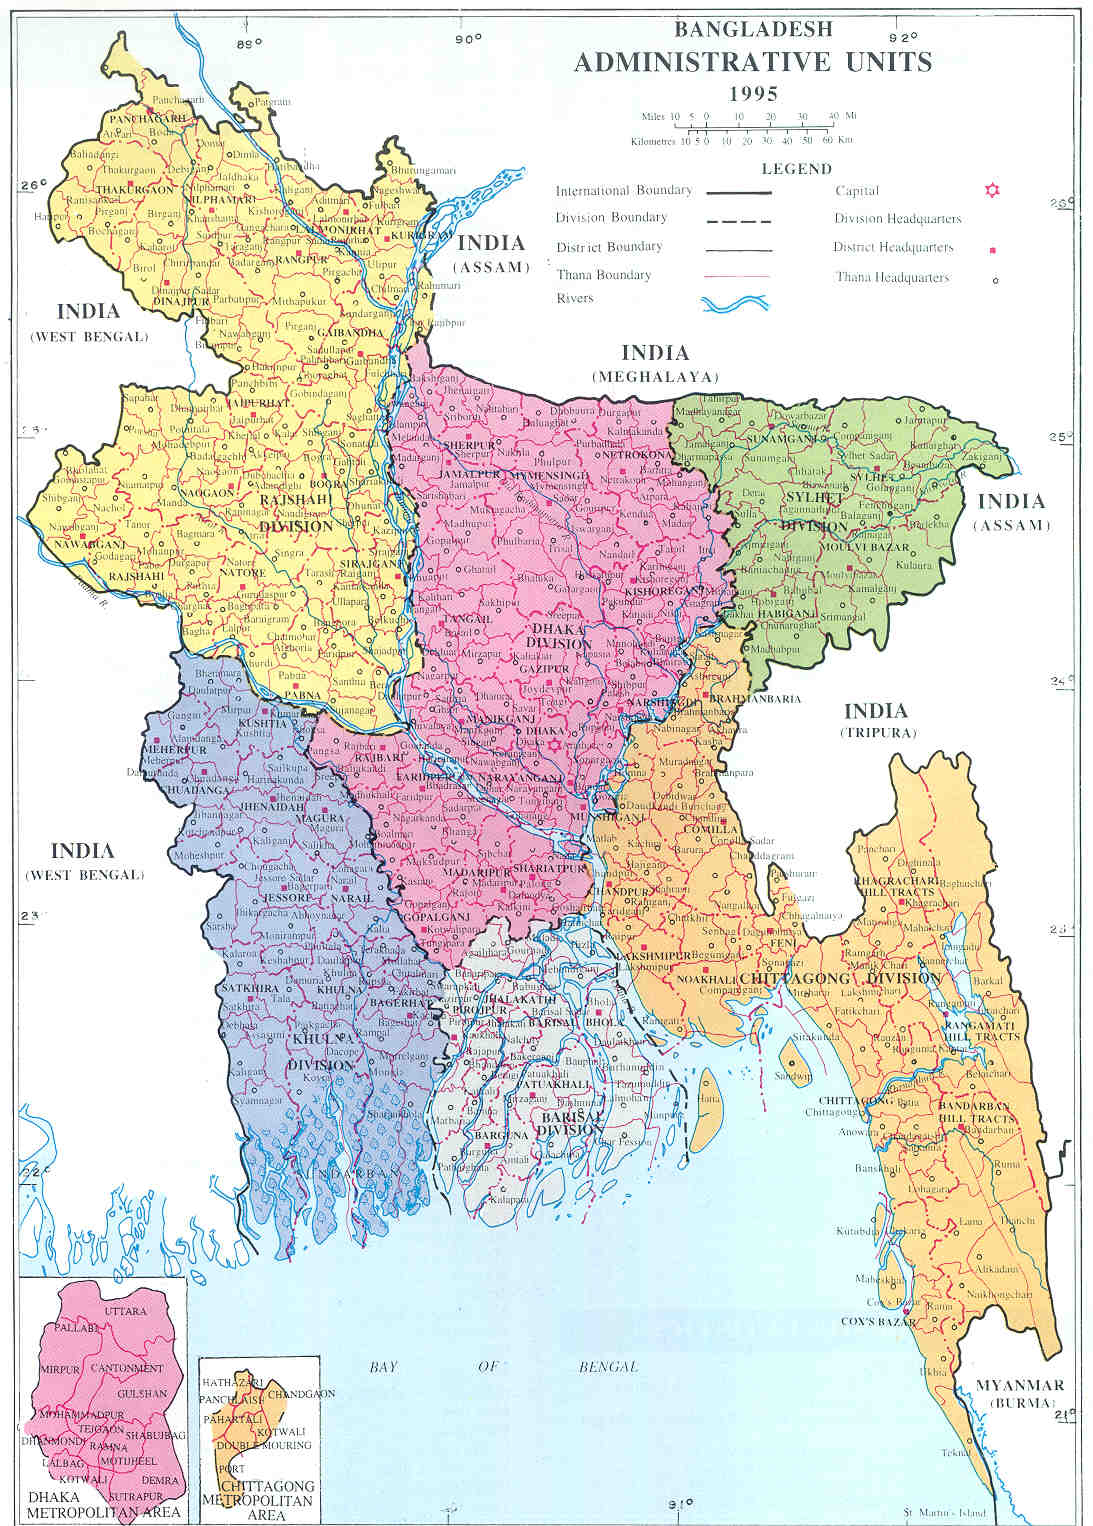 together with the indian state of west bengal it makes up the ethnology linguistic region of bengal the name bangladesh means country of bengal in the